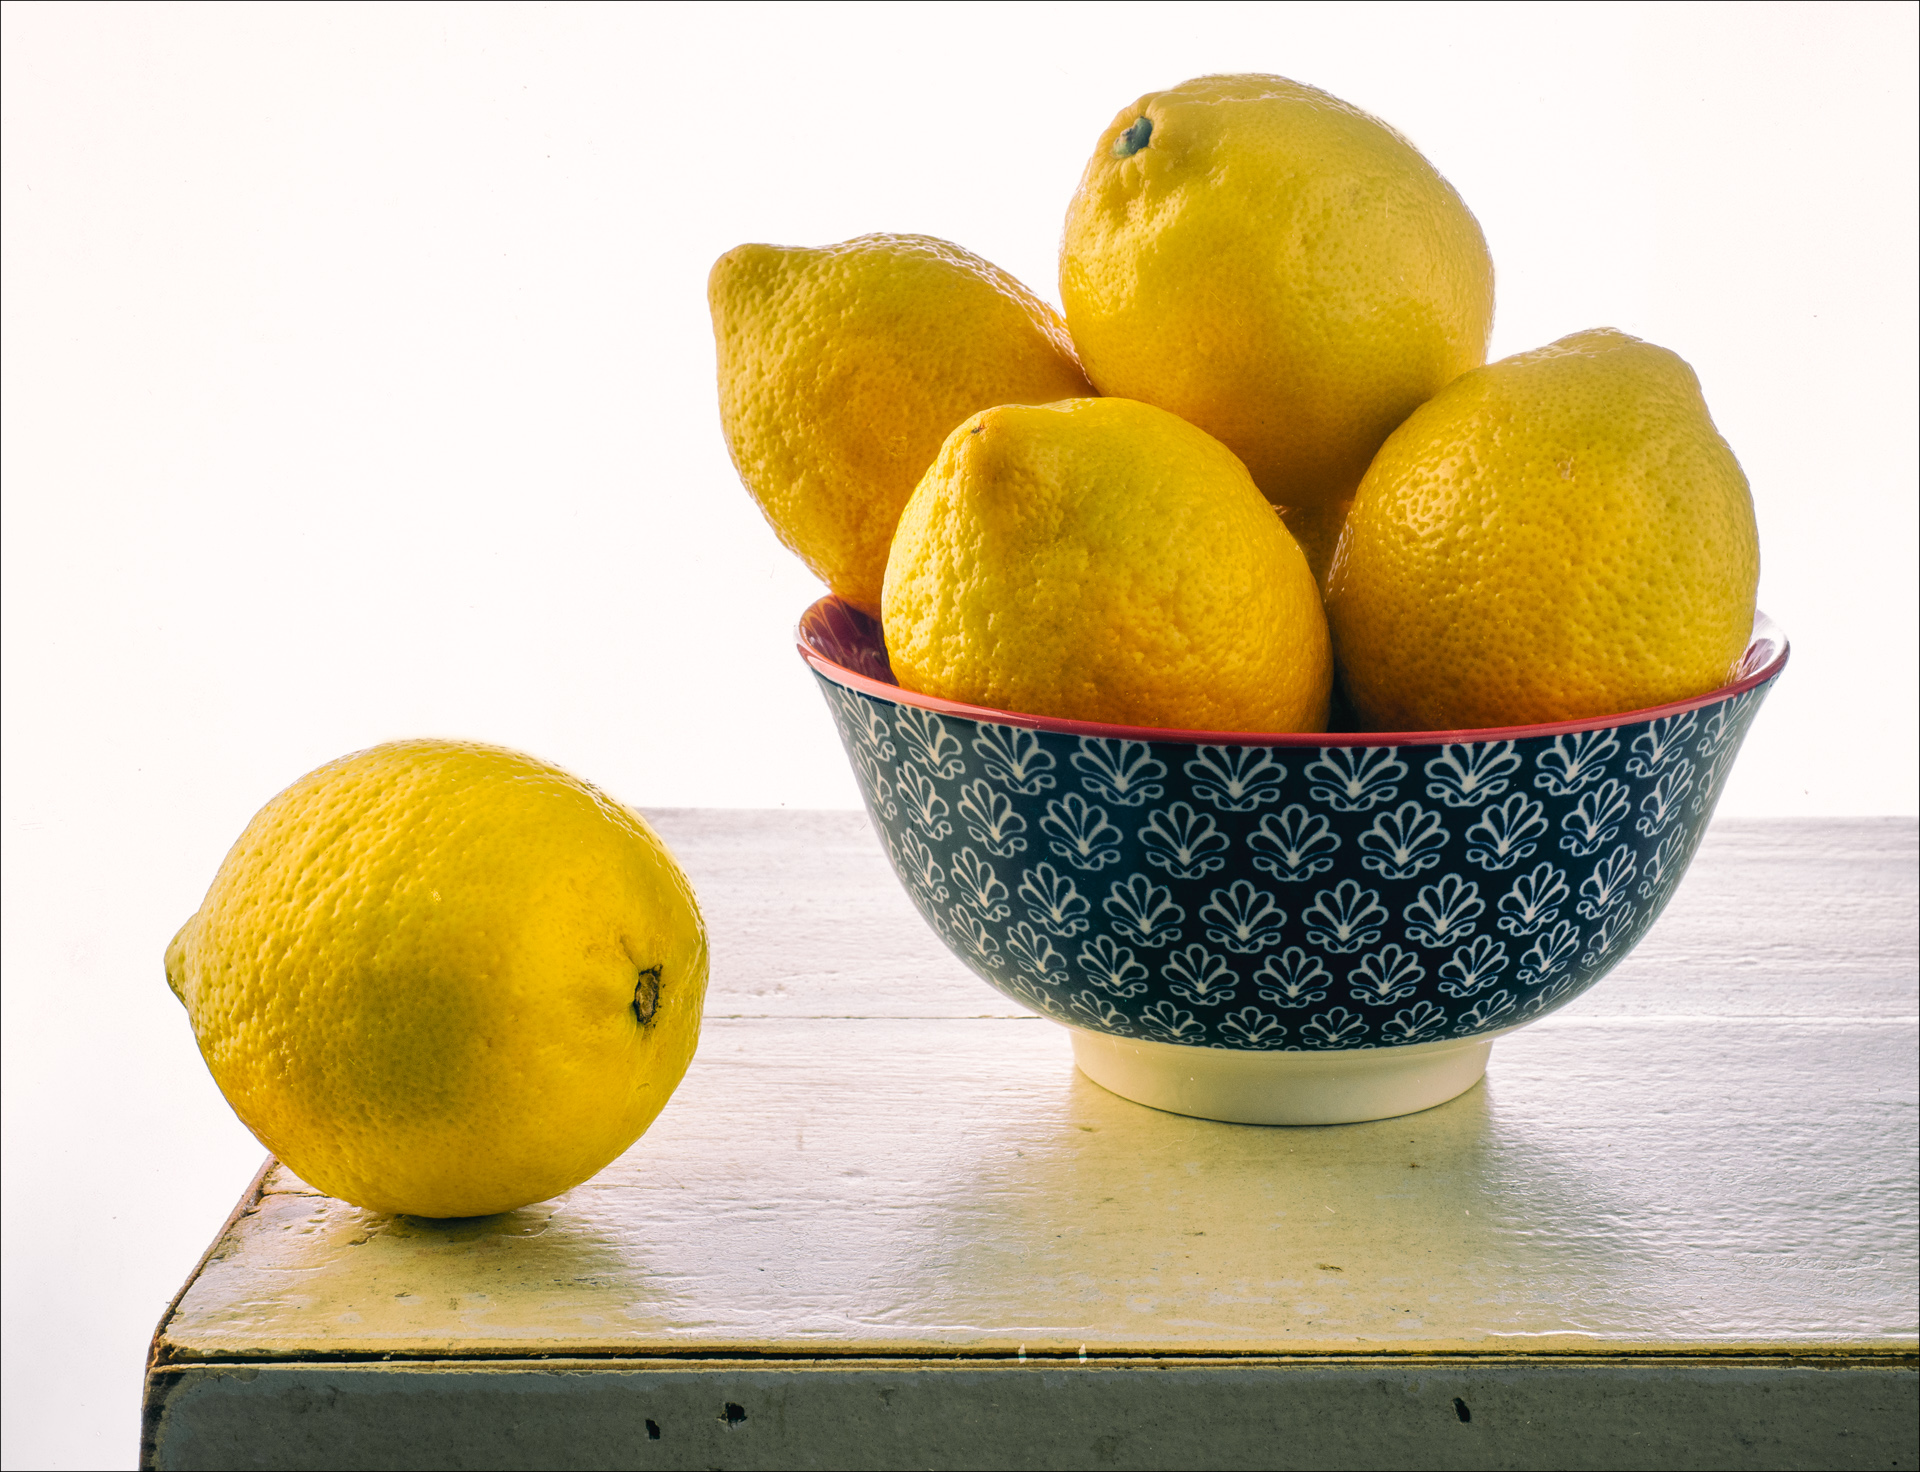 Still Life with Lemons, a bowl of lemons on a table